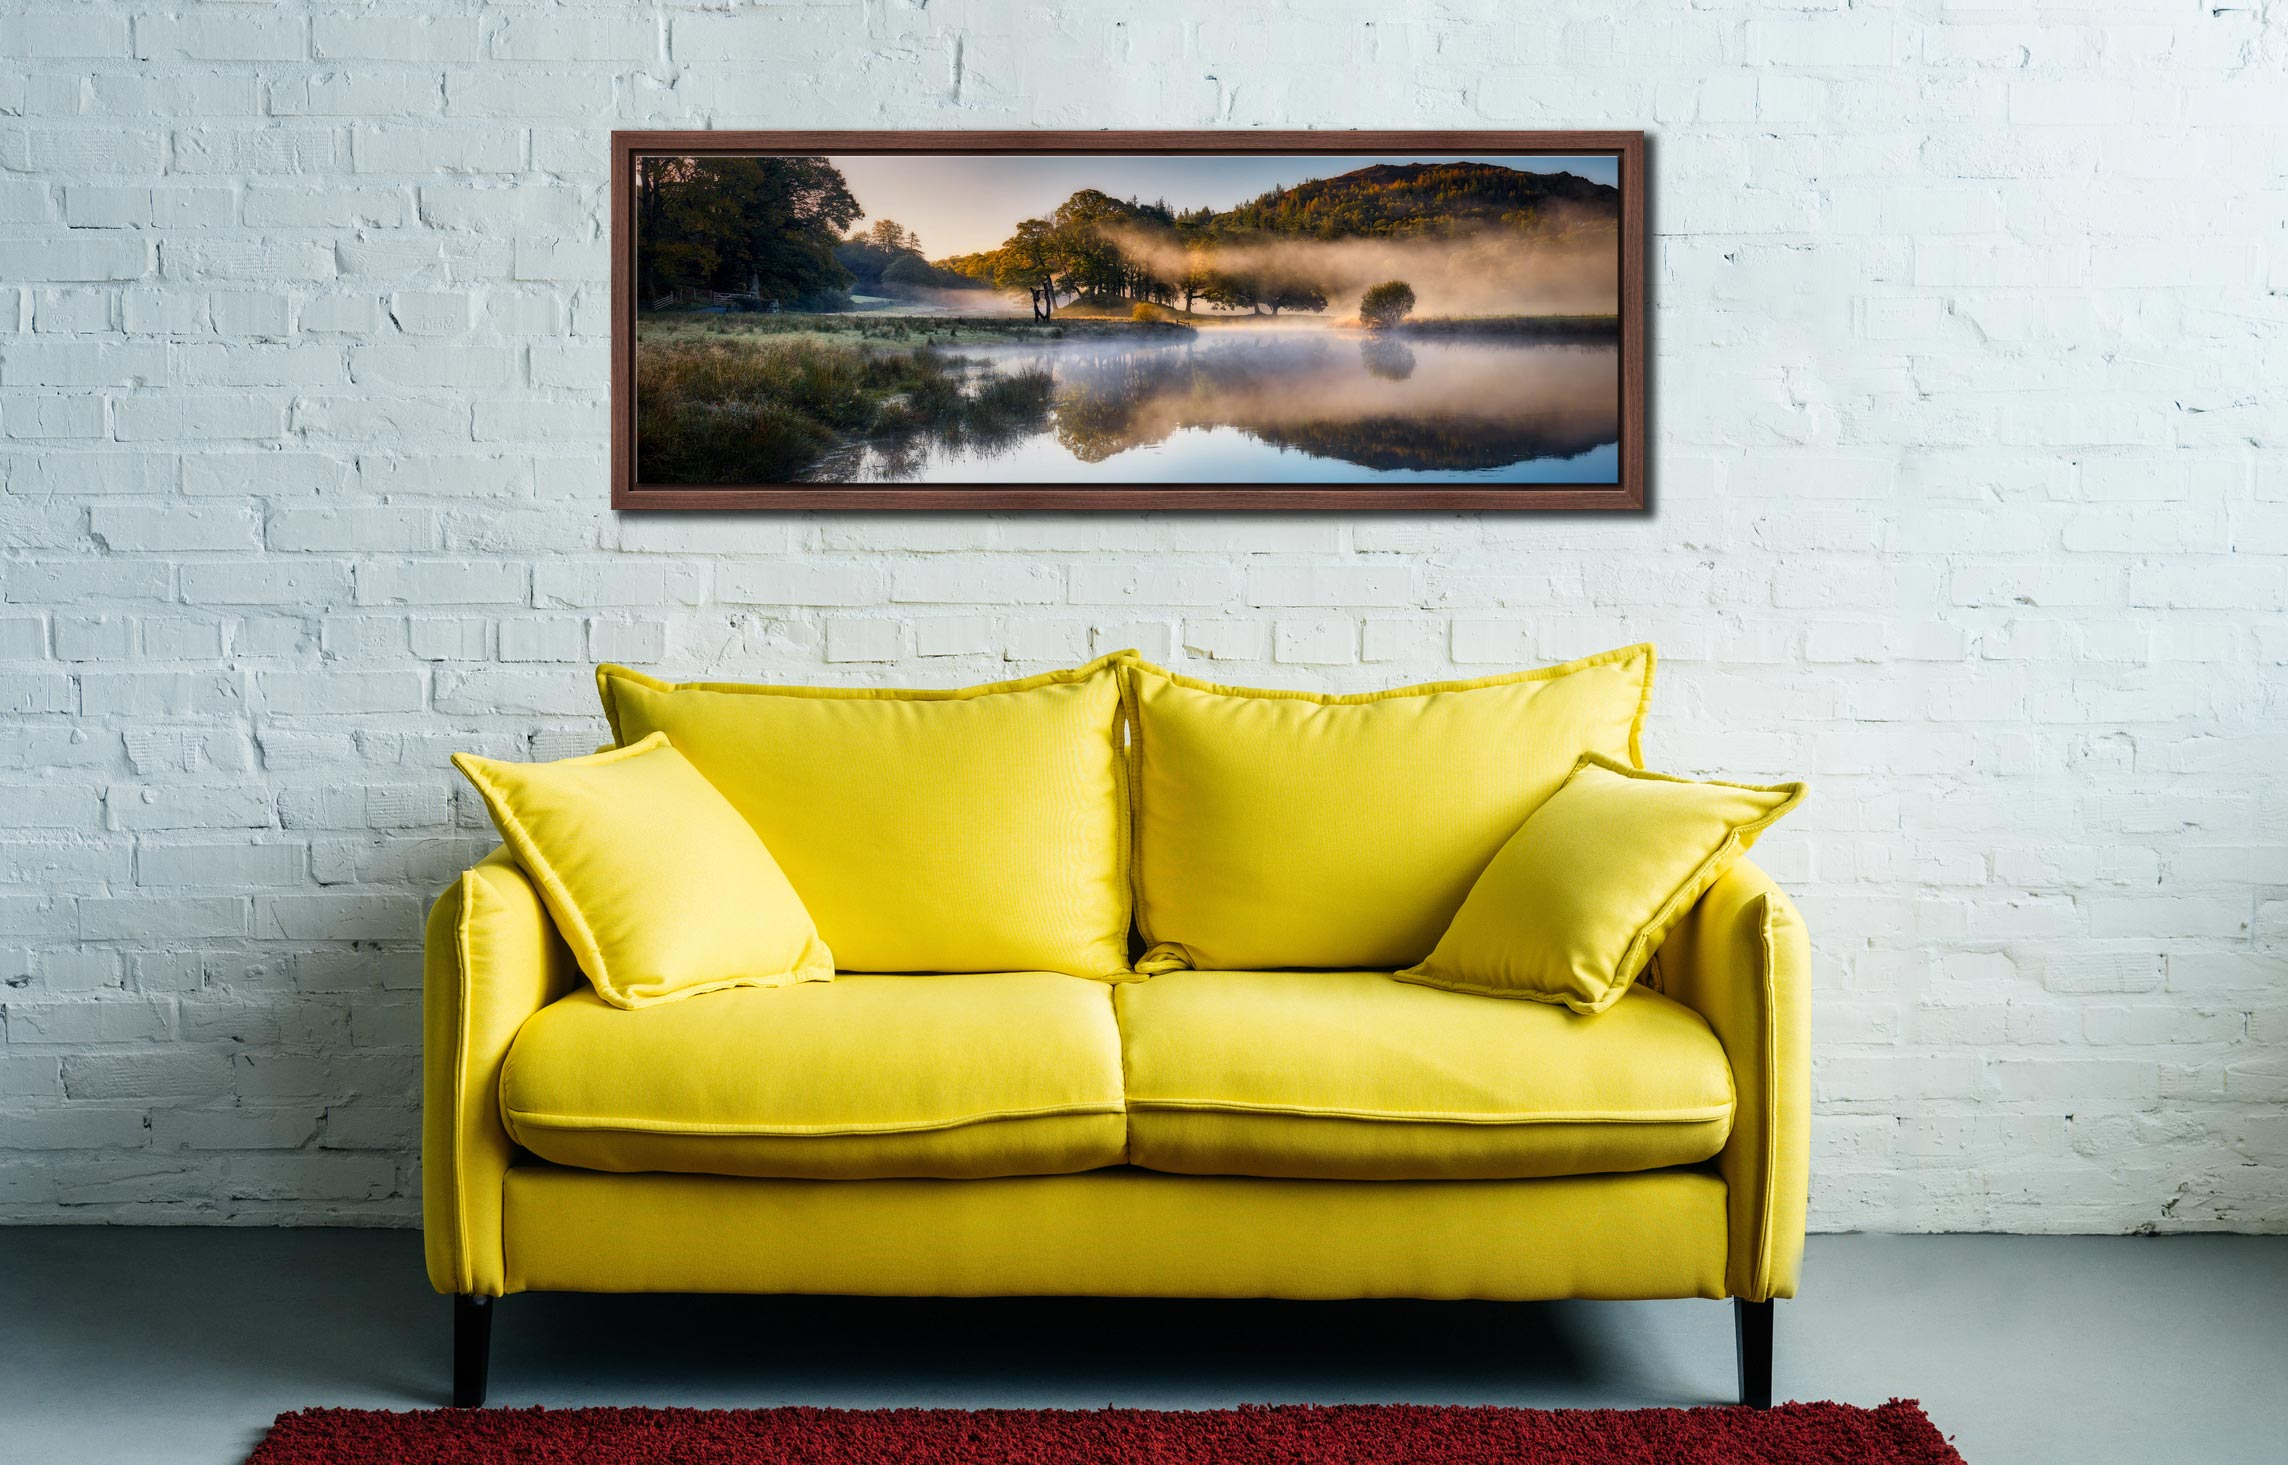 Misty autumn morning on the River Brathay near Elterwater - Walnut floater frame with acrylic glazing on Wall